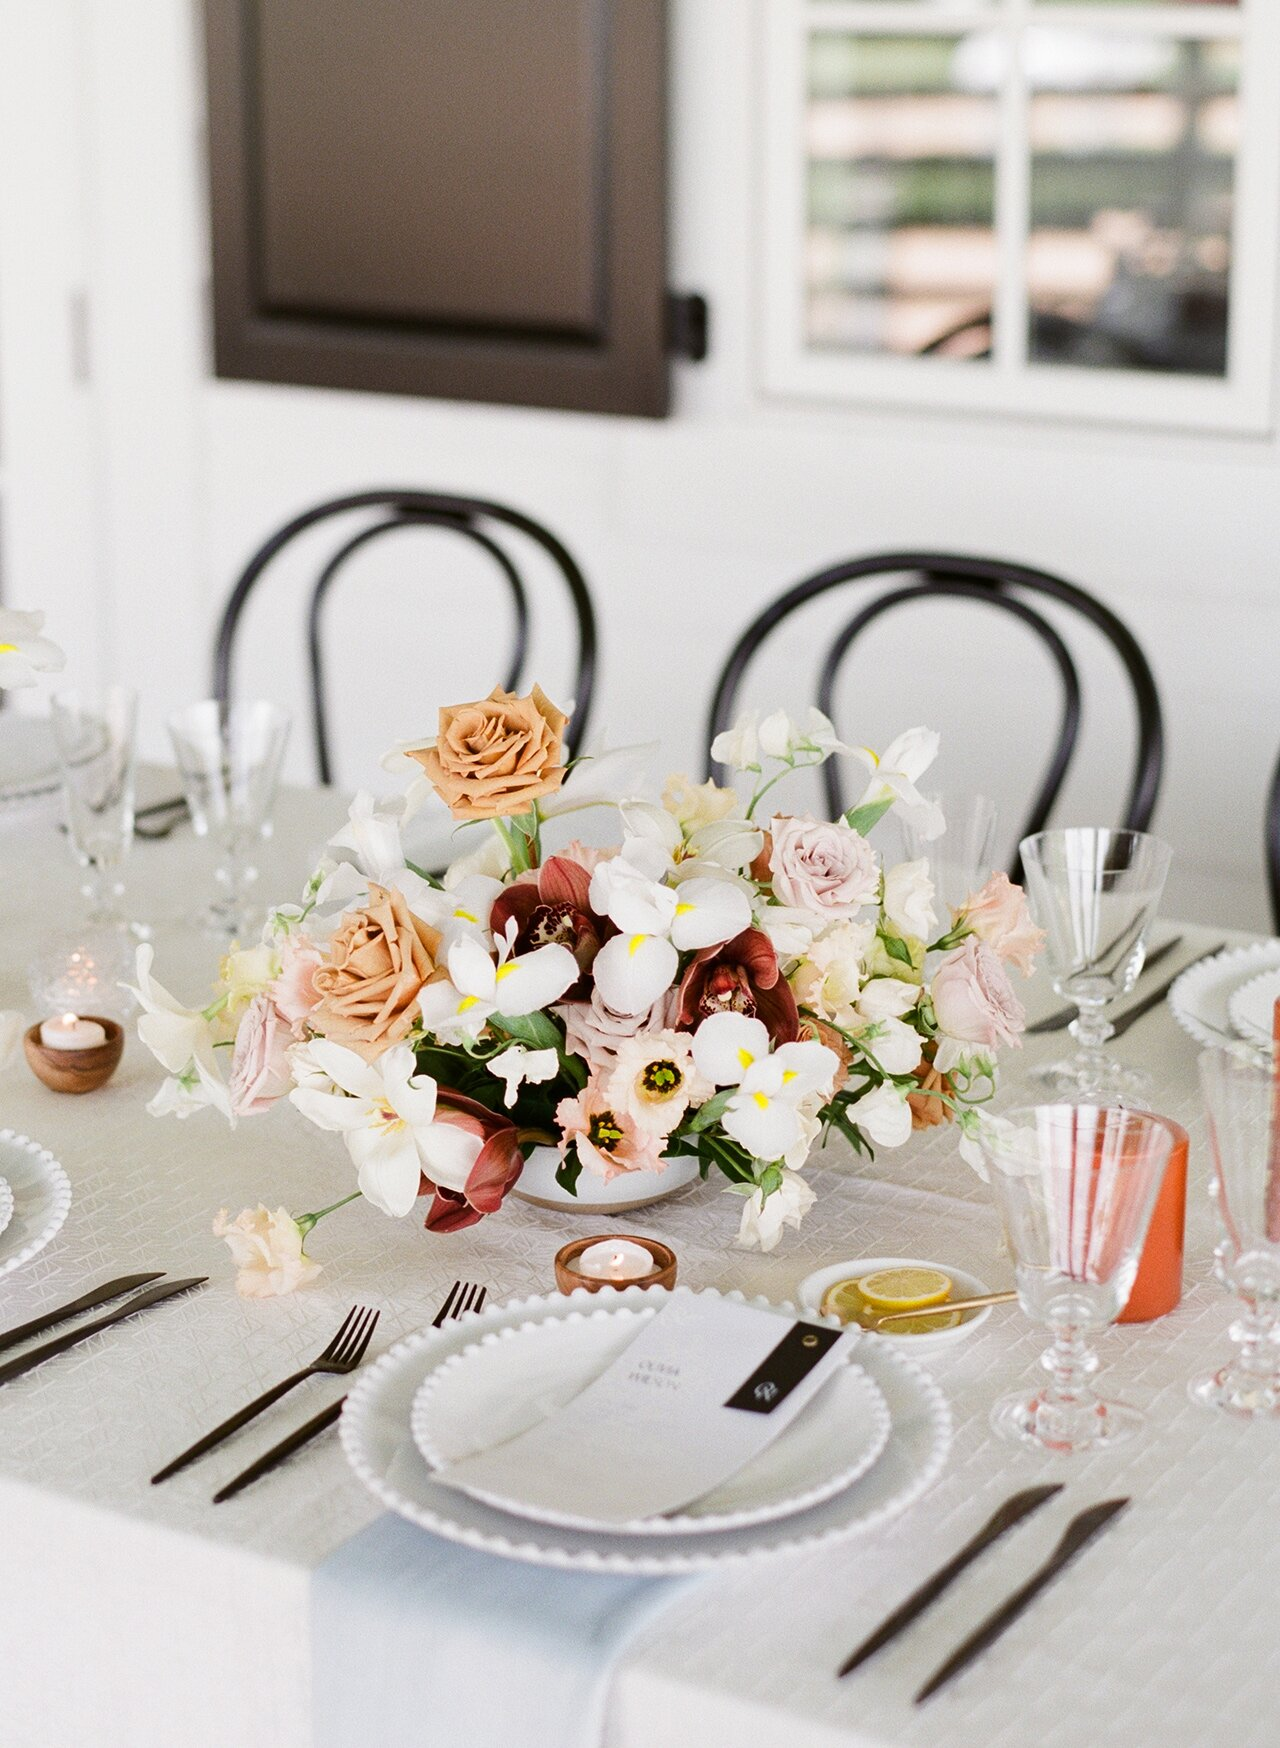 Bridal Shower Brunch Ideas That Go Beyond Mimosas | Martha Stewart